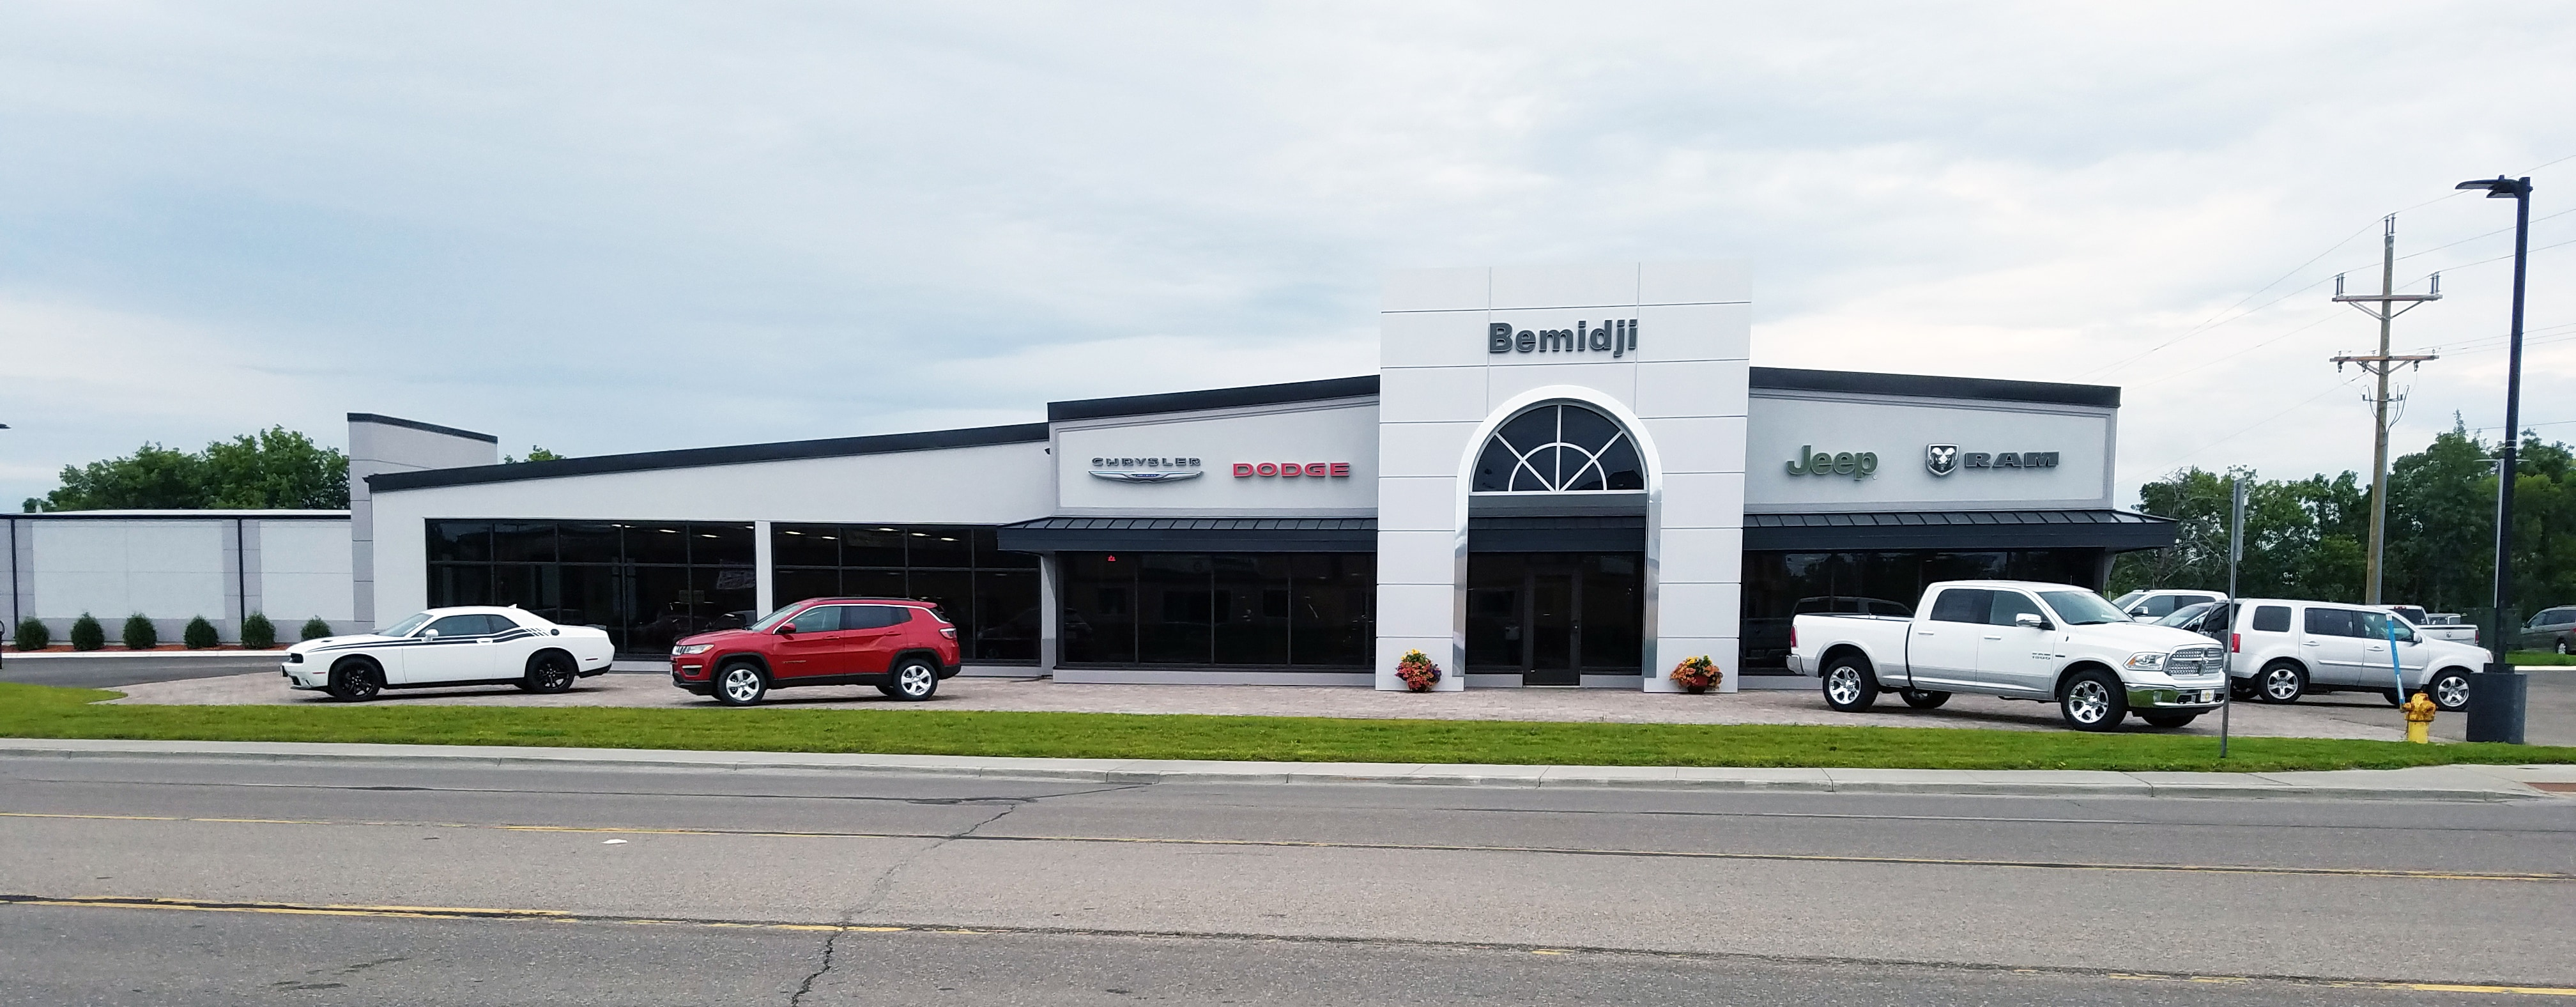 About Bemidji Chrysler Center